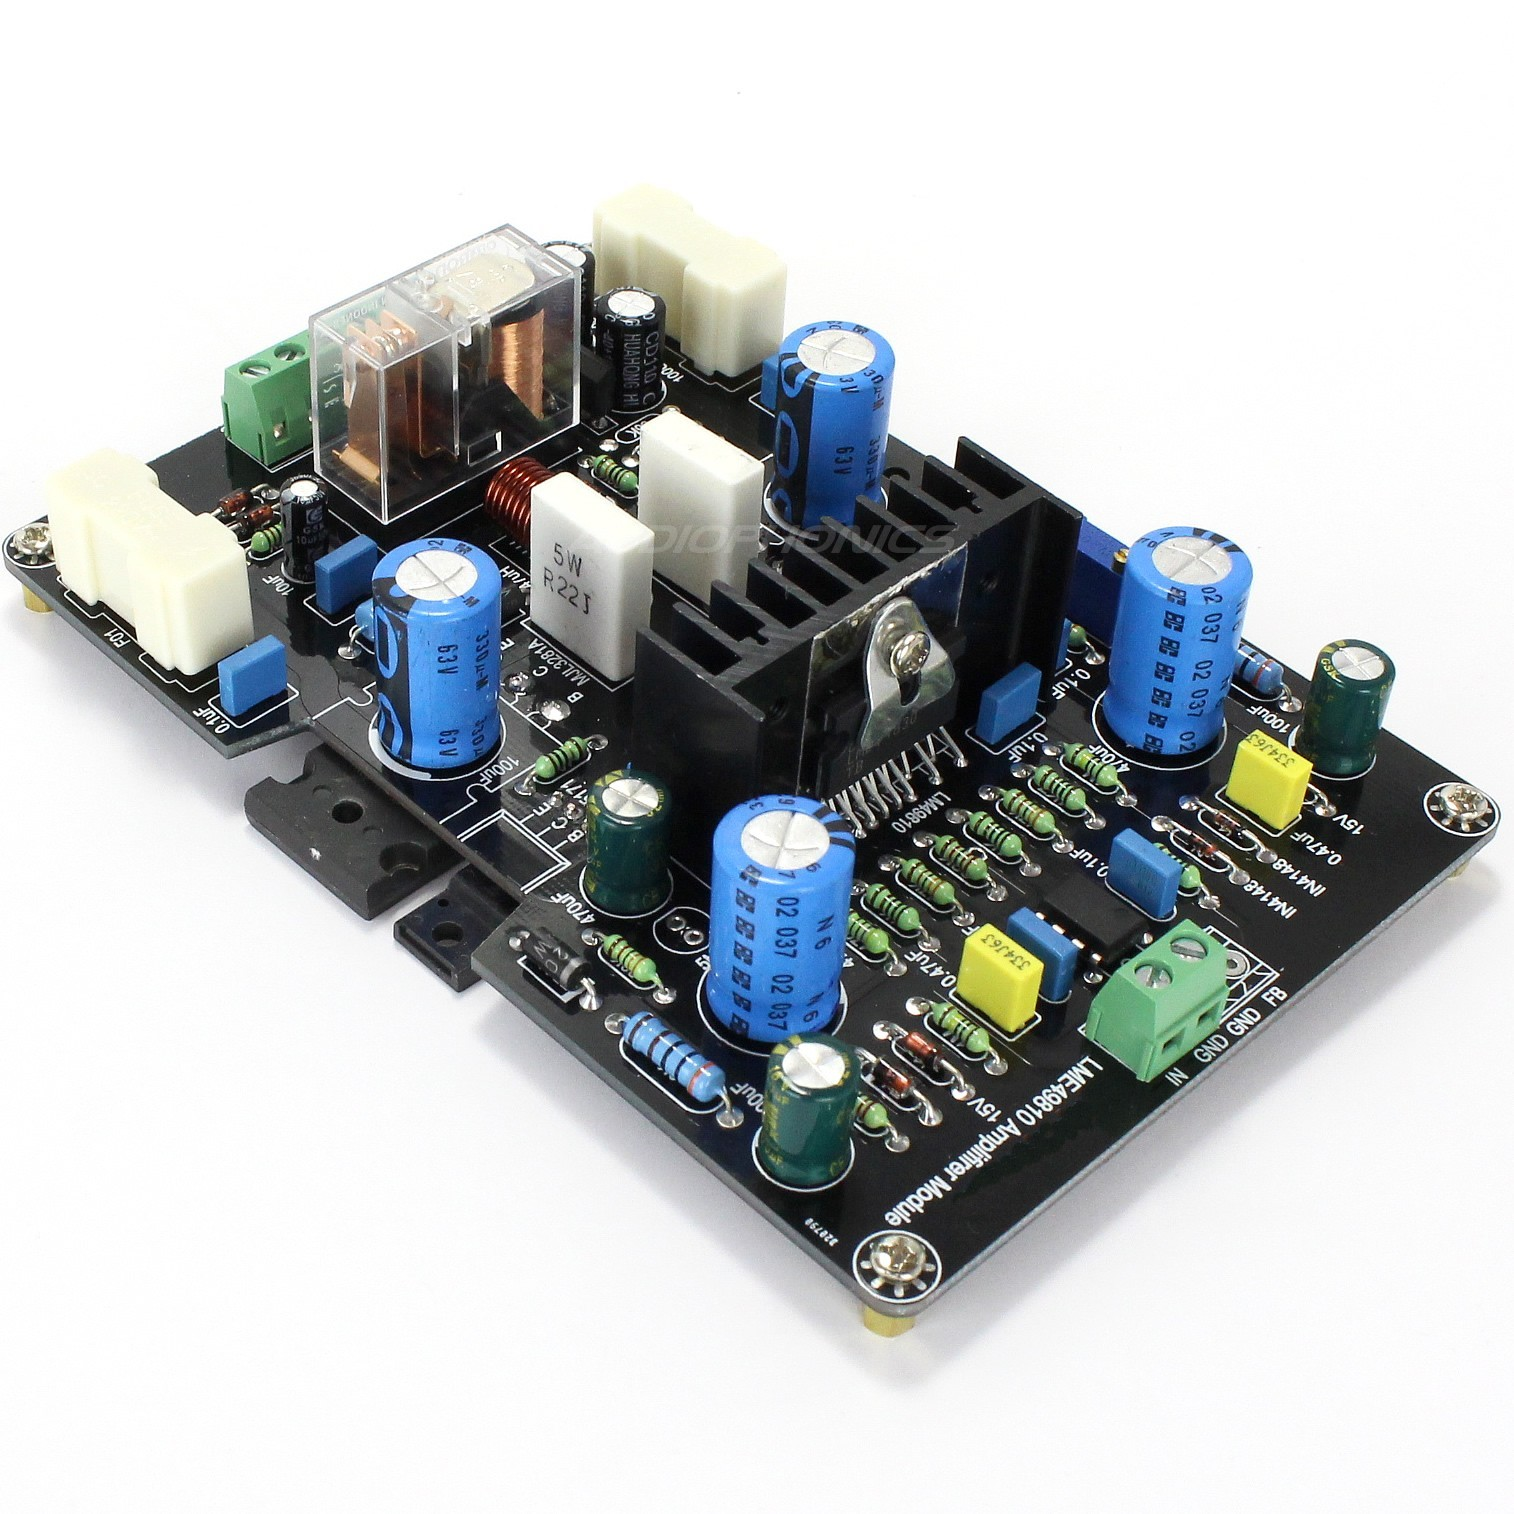 LME49830 2SK1530 FET Amplifier board 100W 8 Ohm Mono (1 unit)